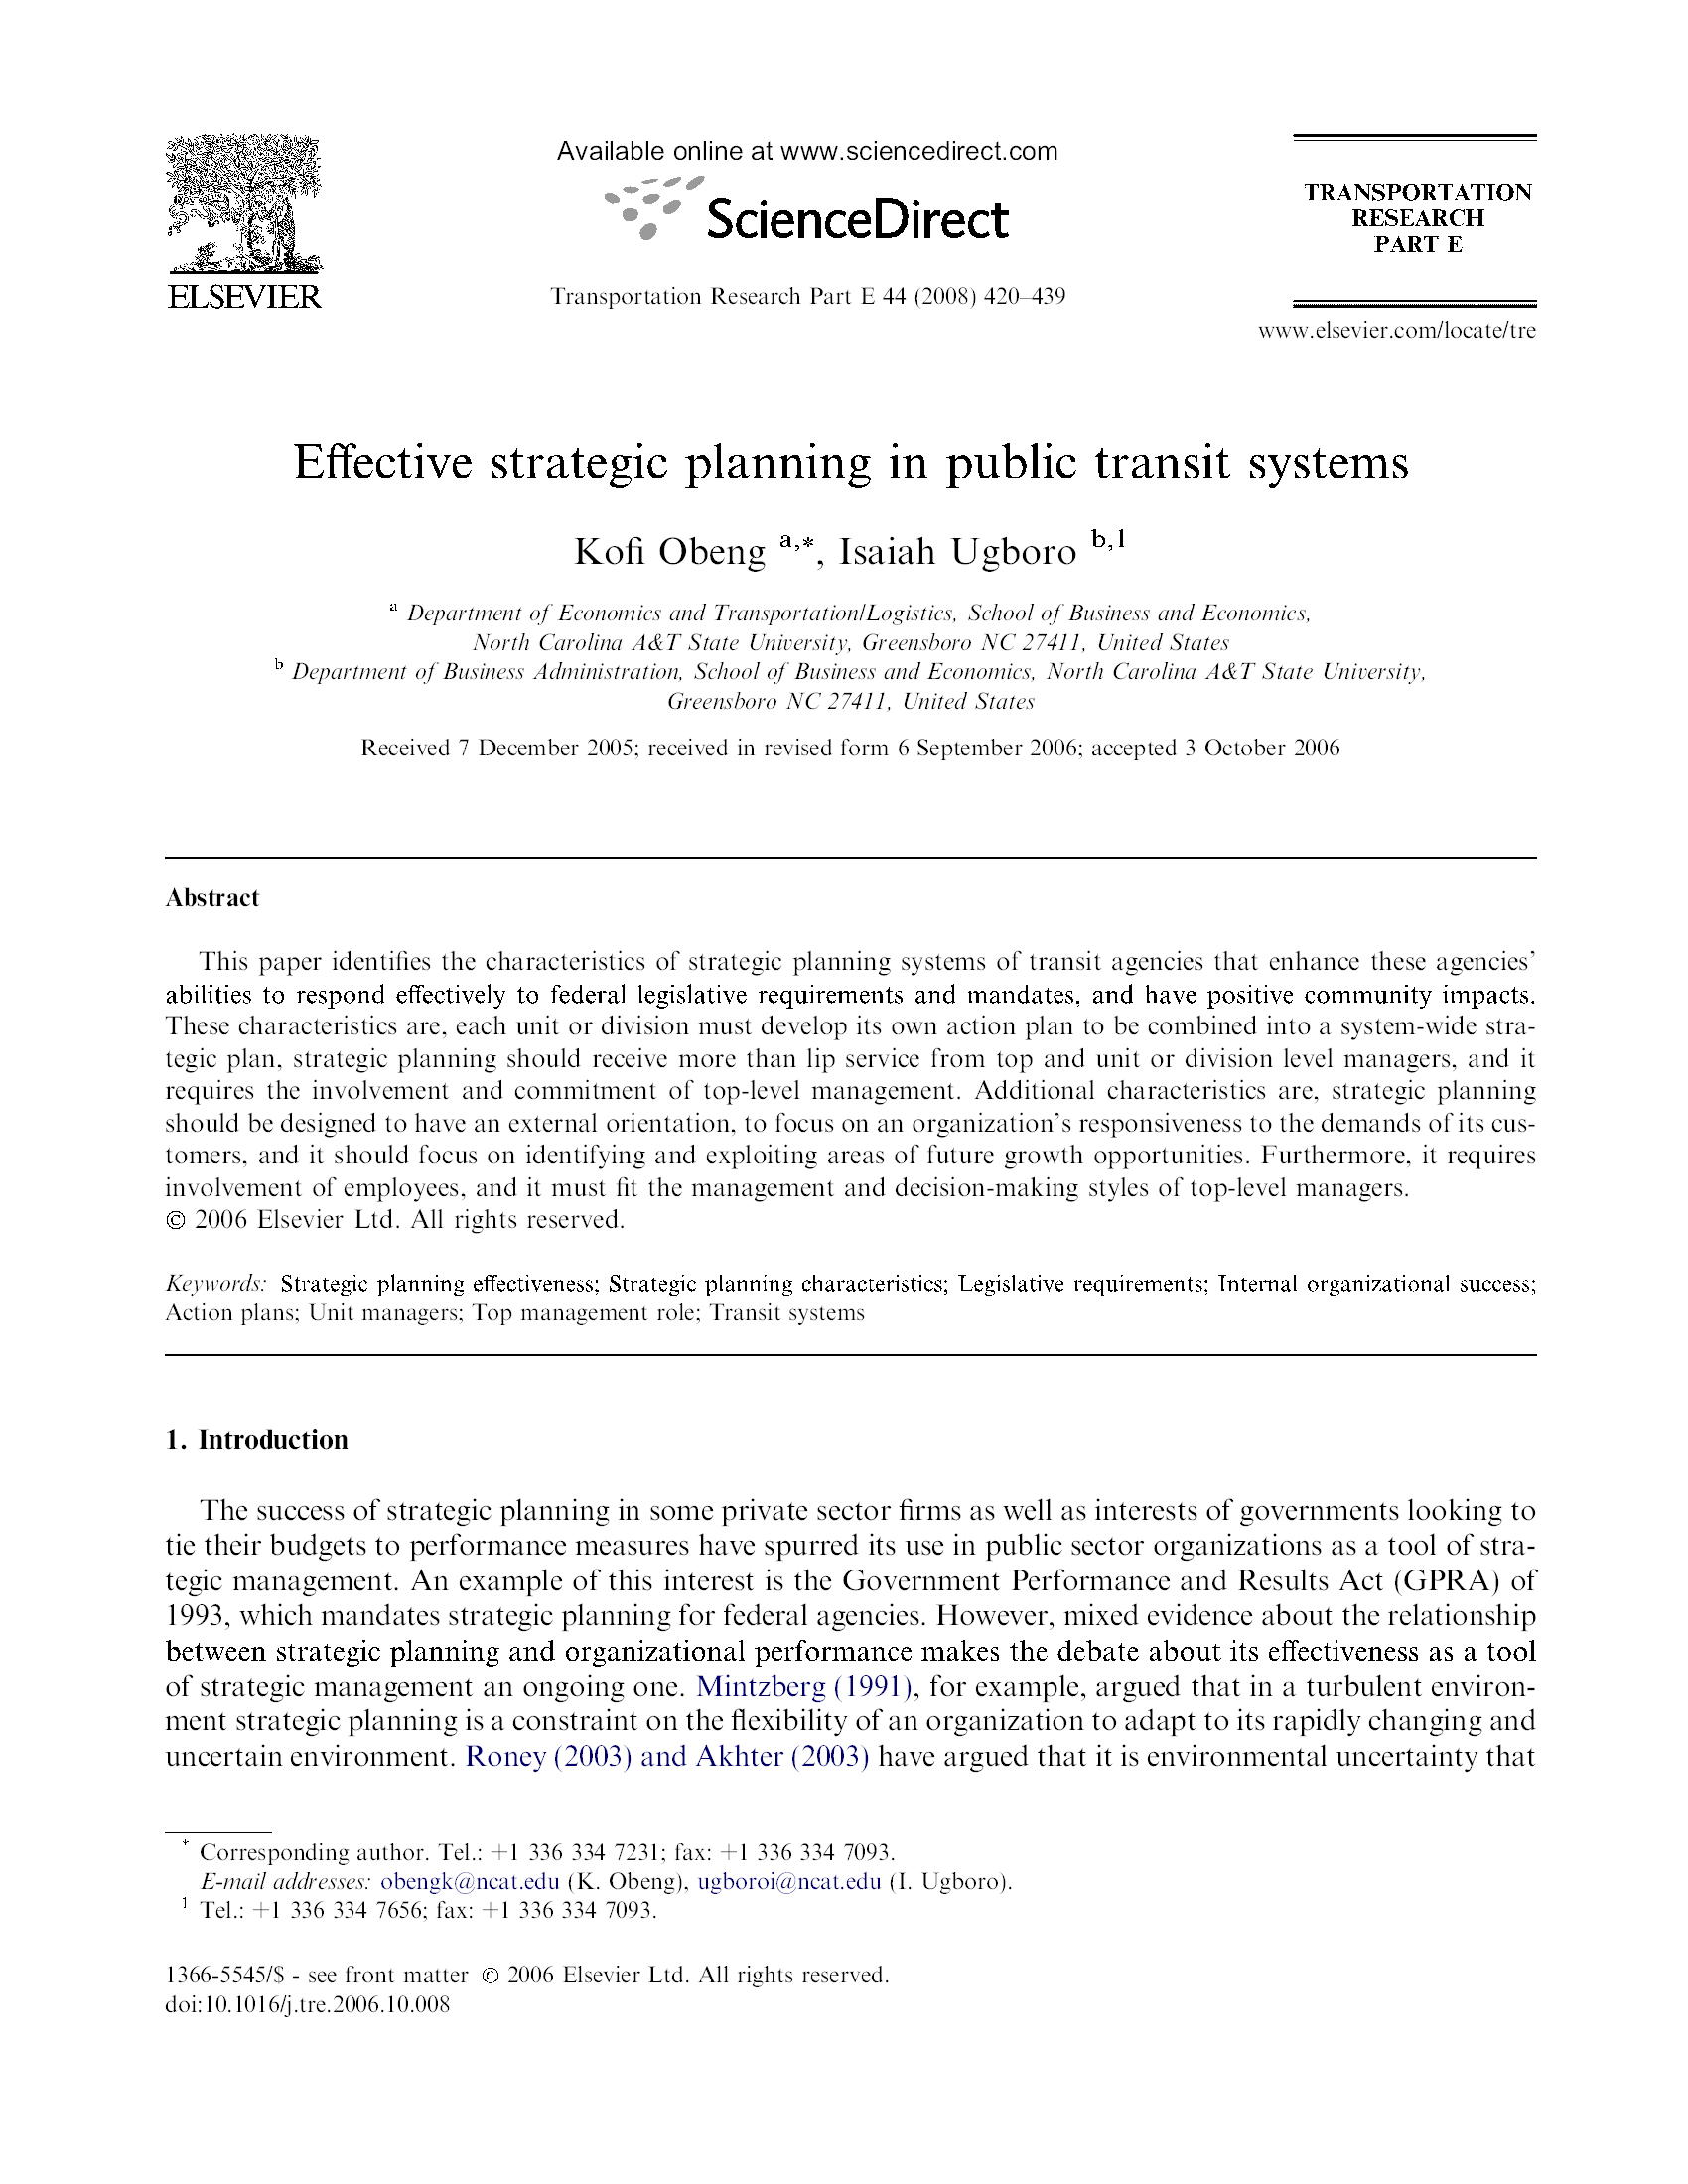 Effective strategic planning in public transit systems 20